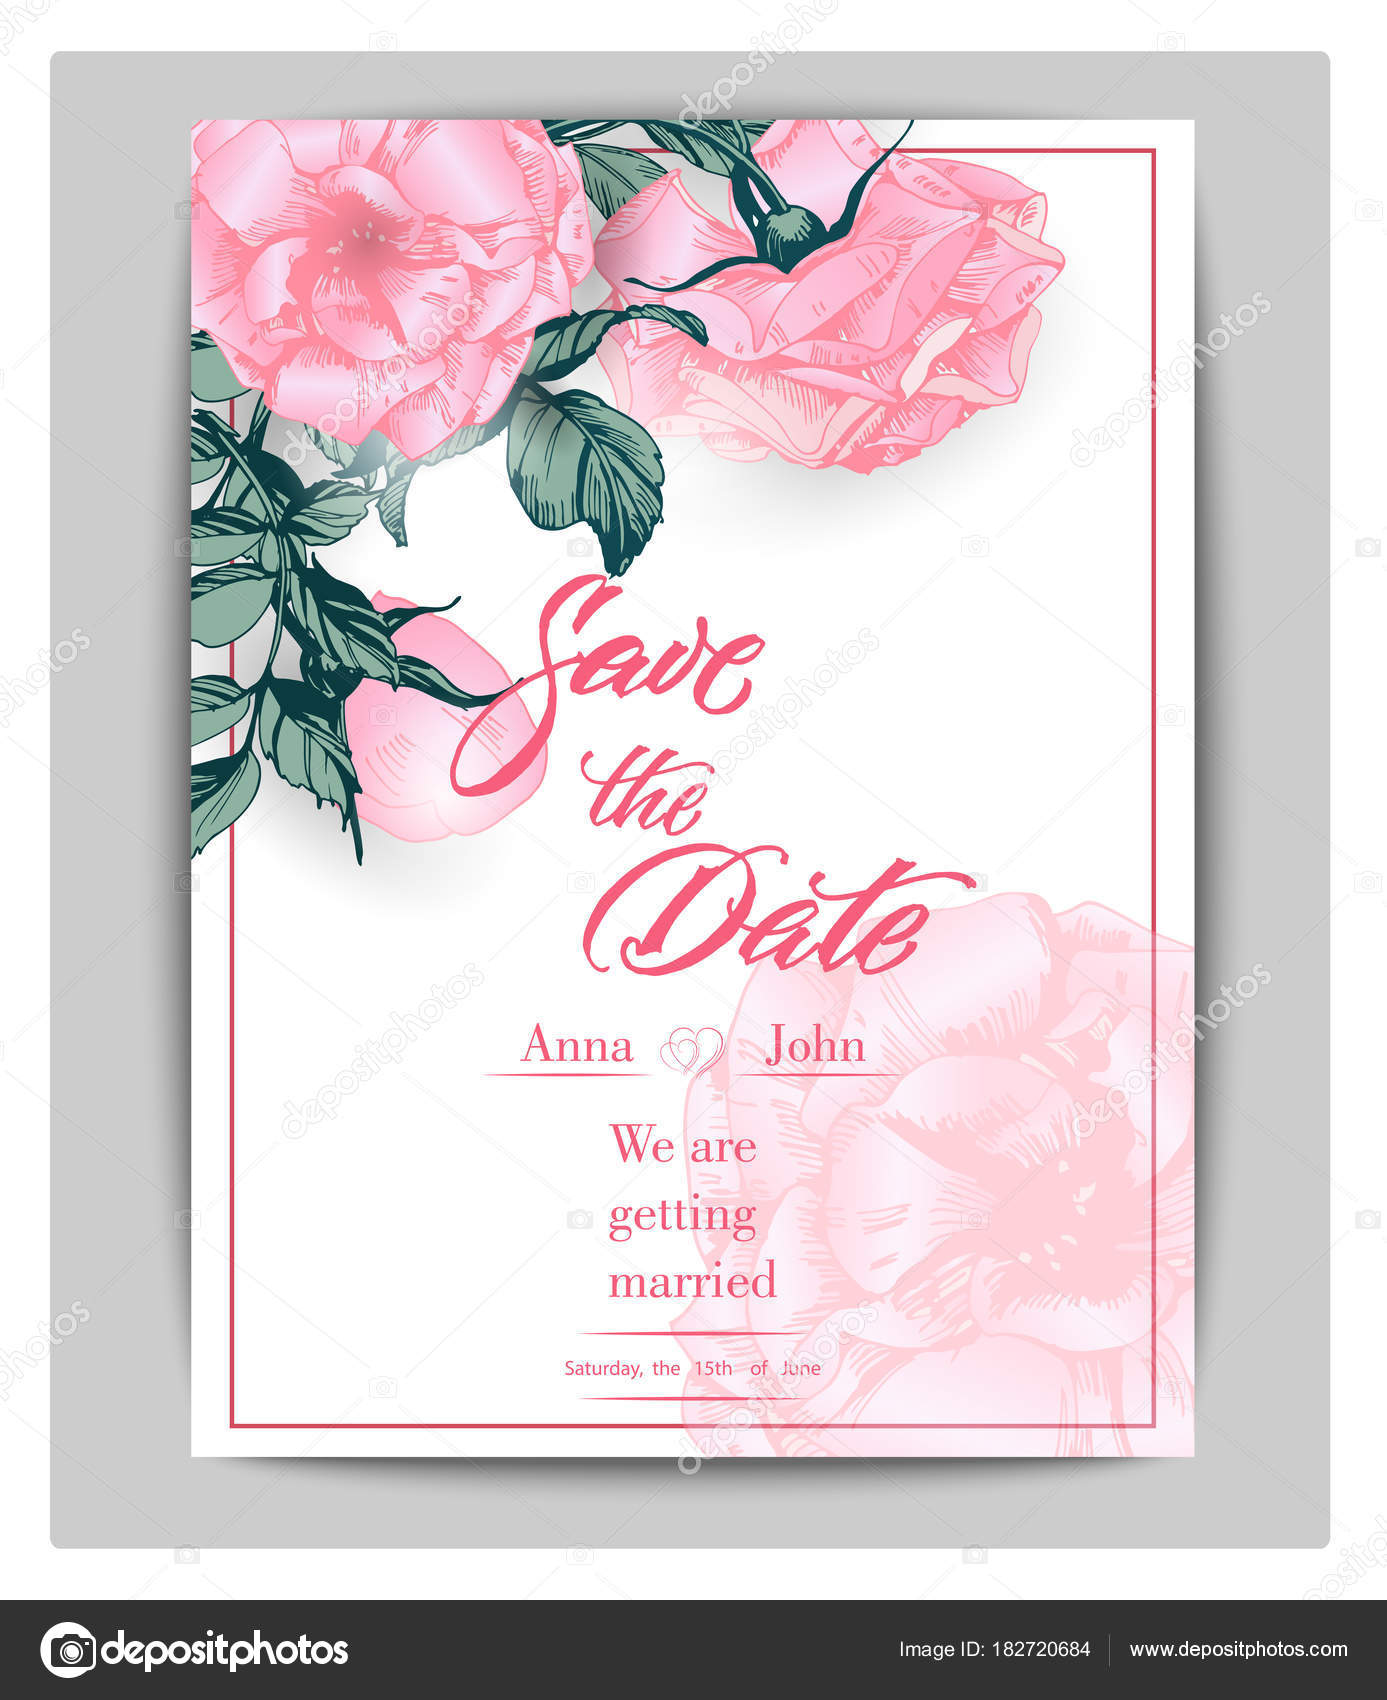 Save the date cards with roses can be used for wedding invitation save the date cards with roses can be used for wedding invitation birthday card invitation card vector template vector by galina72 stopboris Choice Image